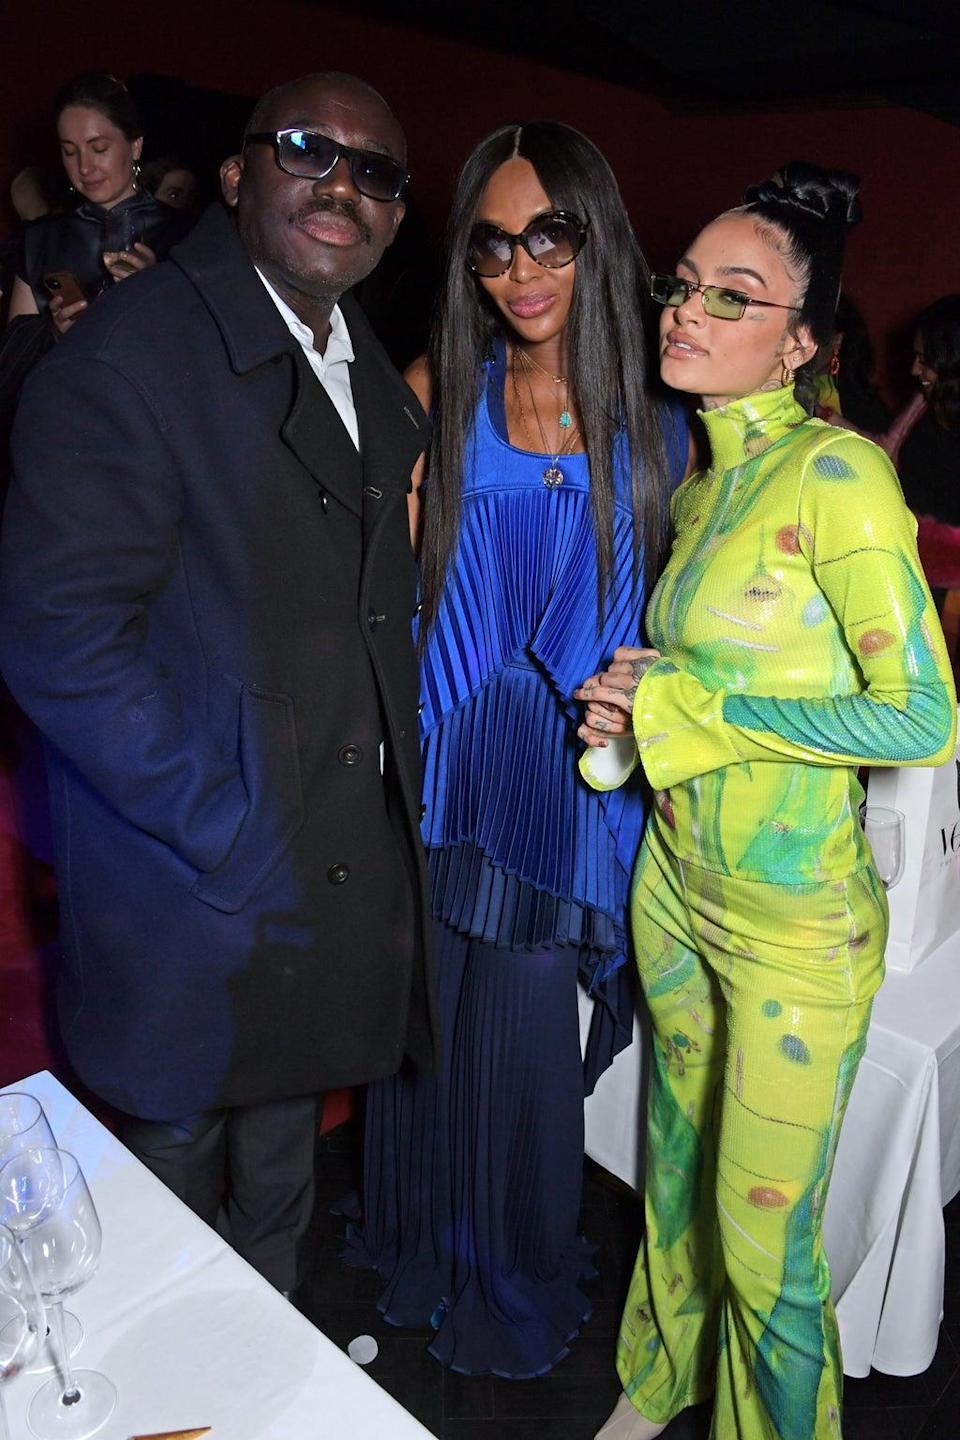 Edward Enninful, Naomi Campbell and Kehlani at the BFC's Opening Party (Dave Benett/Getty Images)